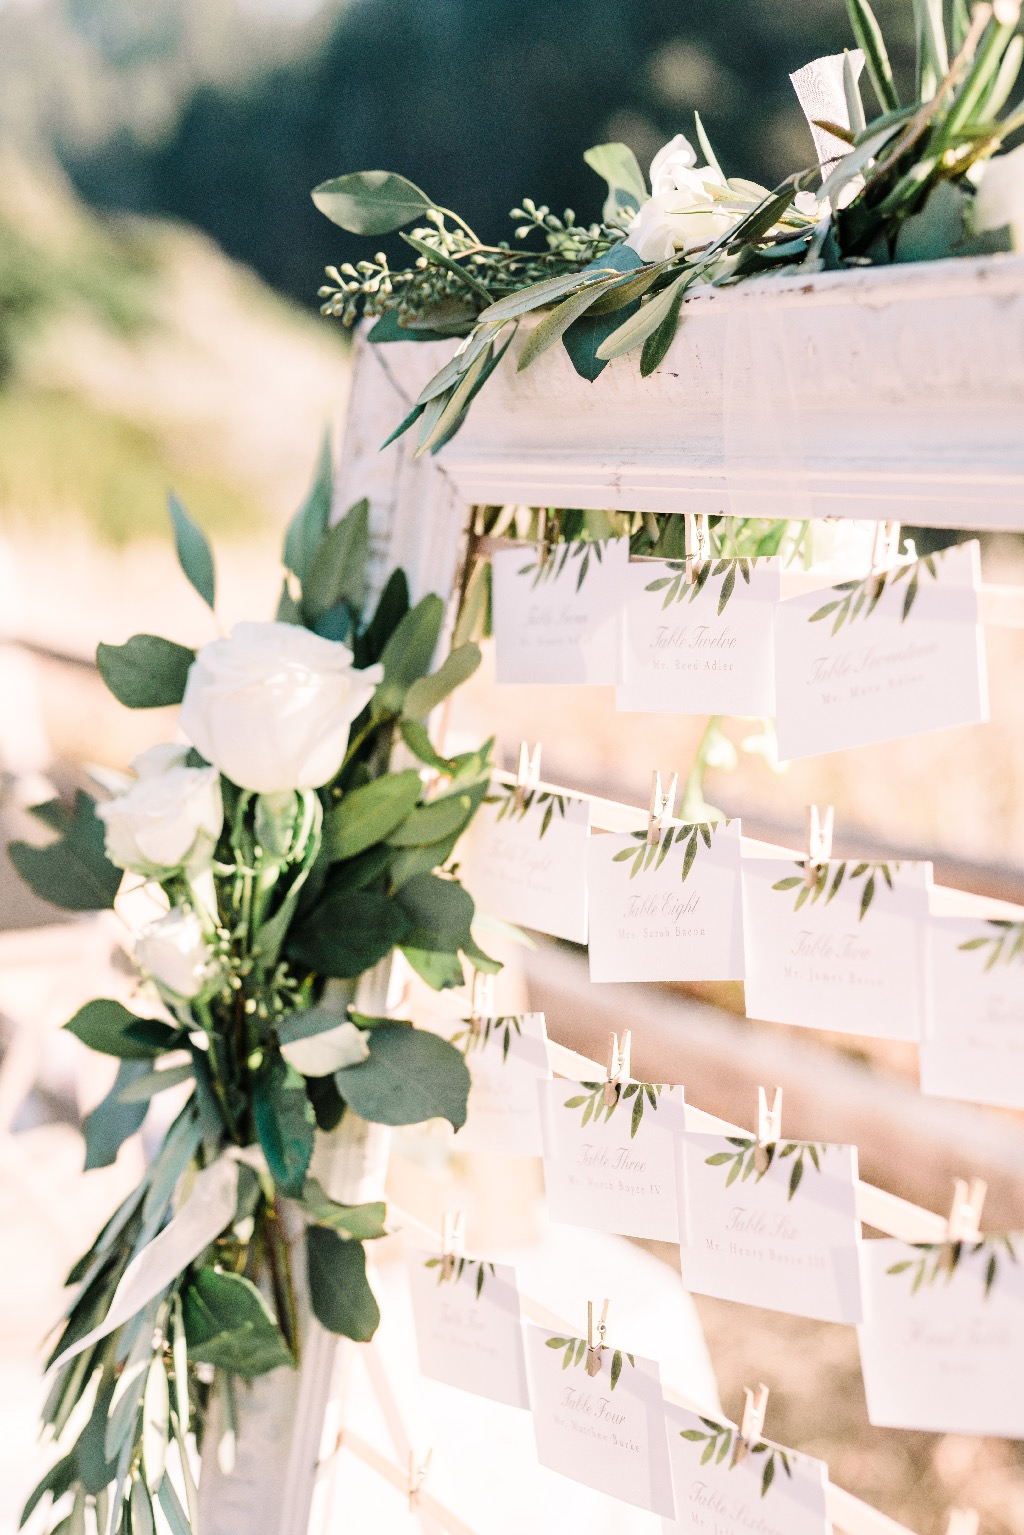 MD_MendocinoWedding_ScottAndrewStudio_2_Details-61.jpg